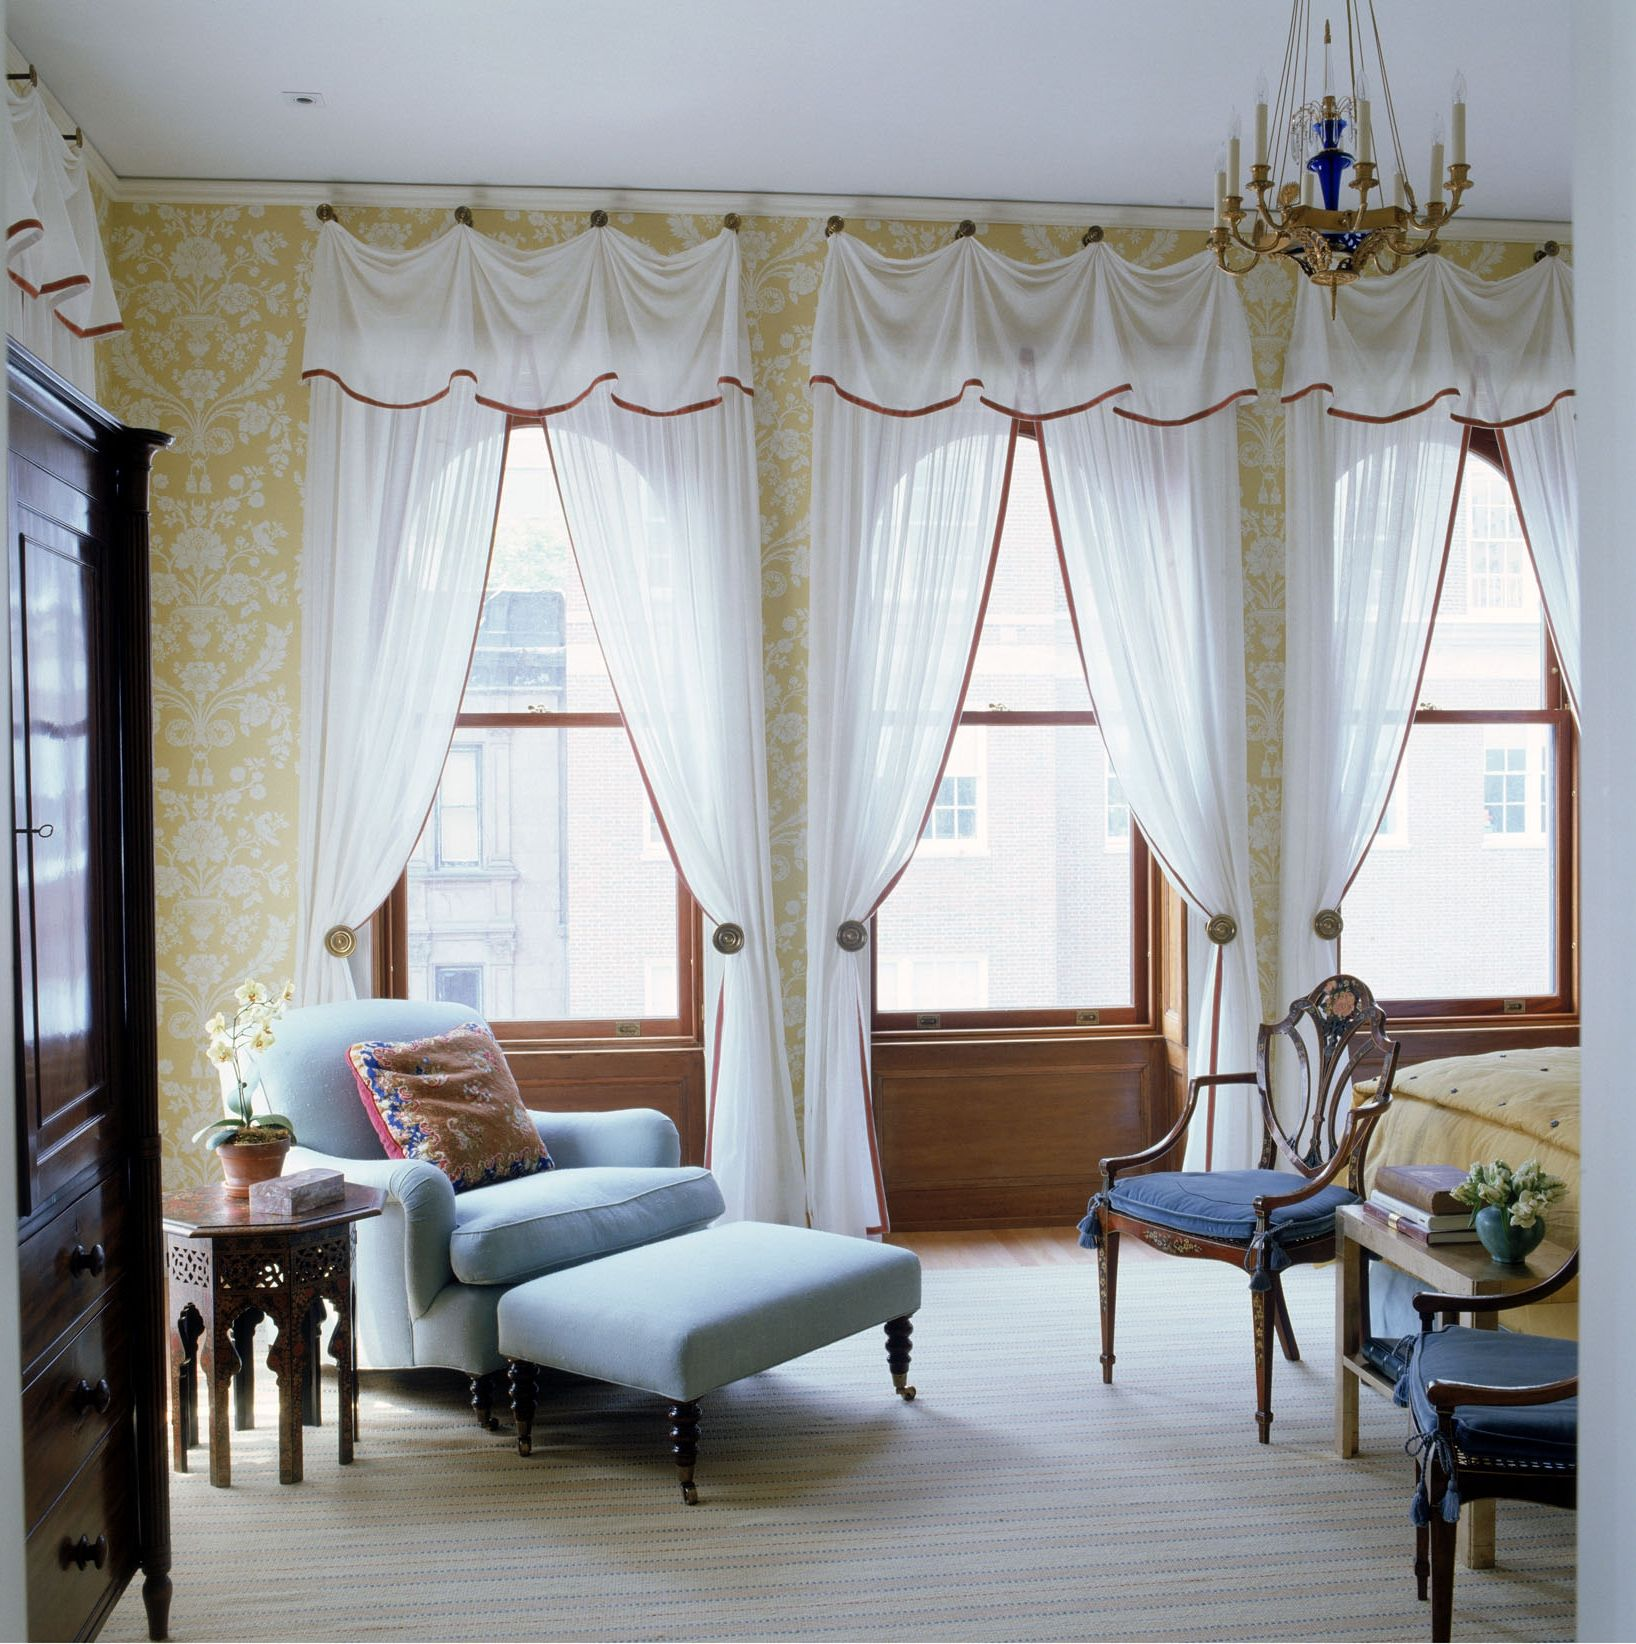 Living Room Curtains Decorating Ideas with 3 Different Style | From ...